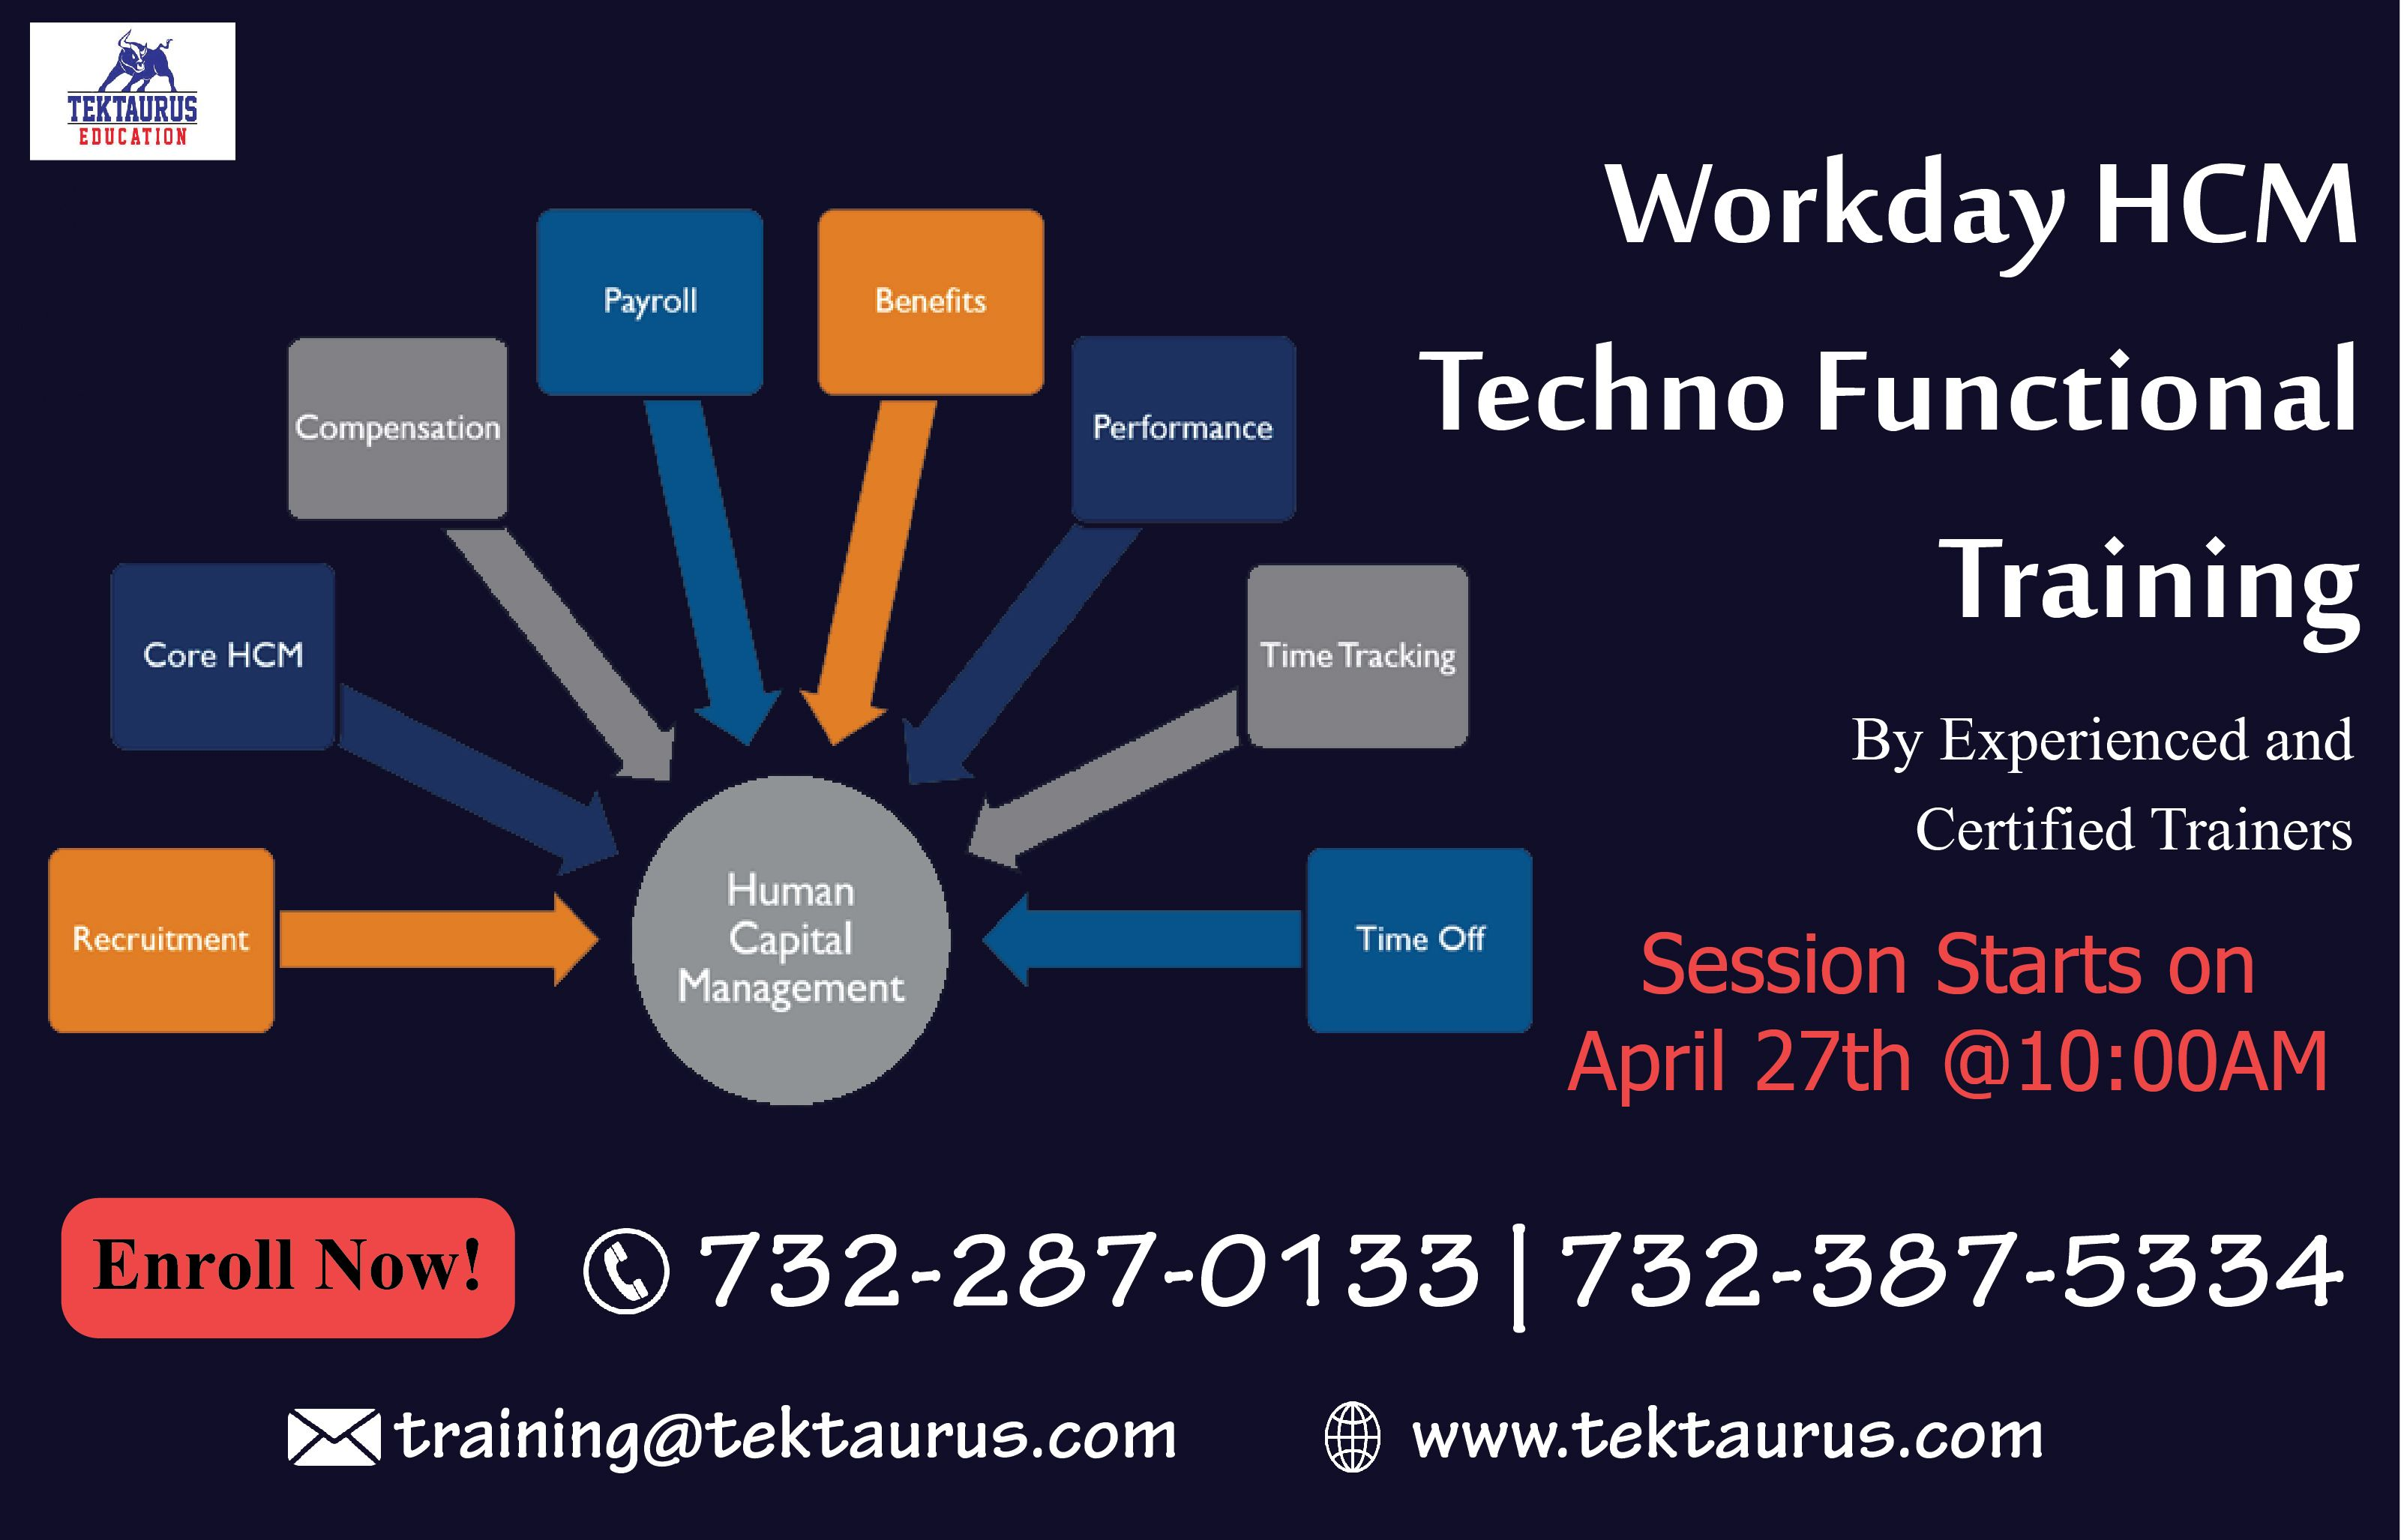 This Workday Training Is Designed For Those Who Are Looking To